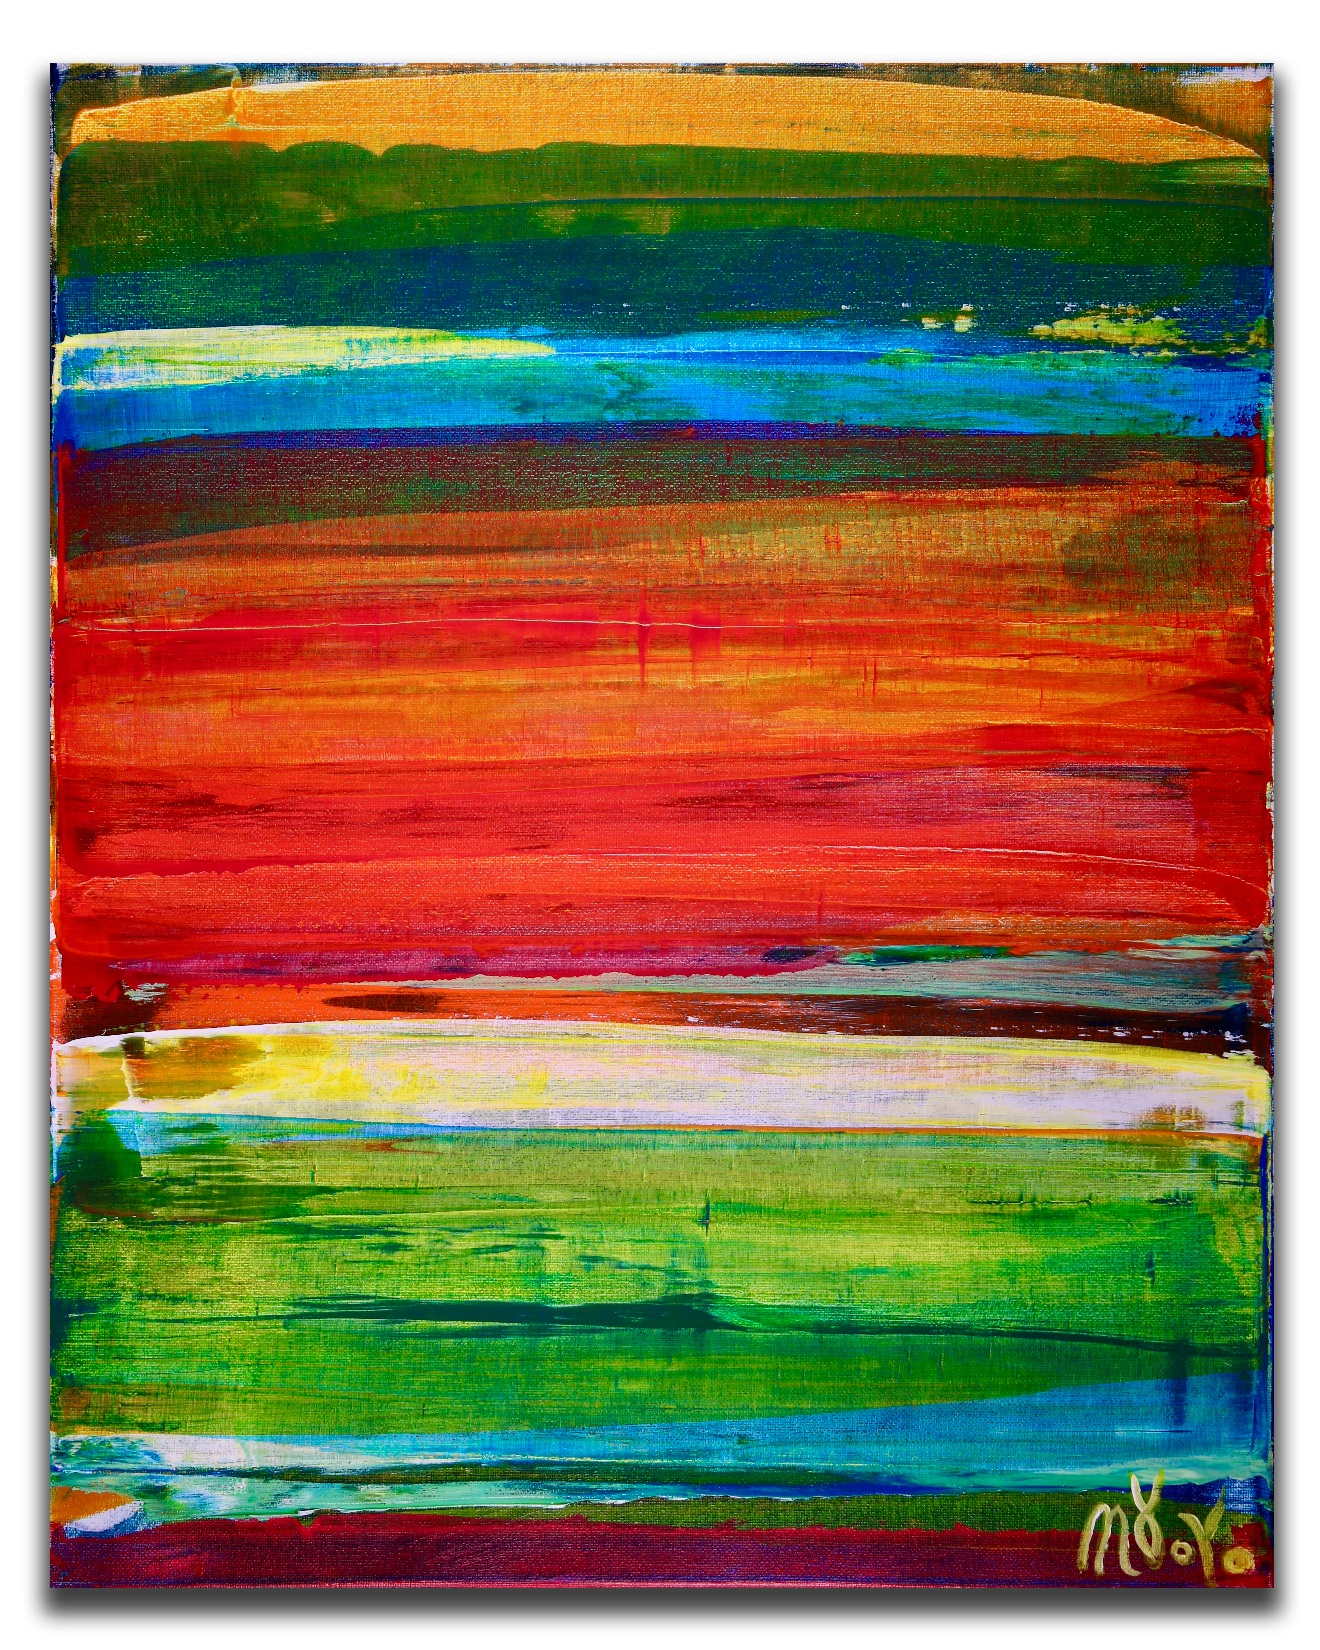 Color revival in Los Angeles 1 by Nestor Toro (2018) Abstract Acrylic painting by Nestor Toro